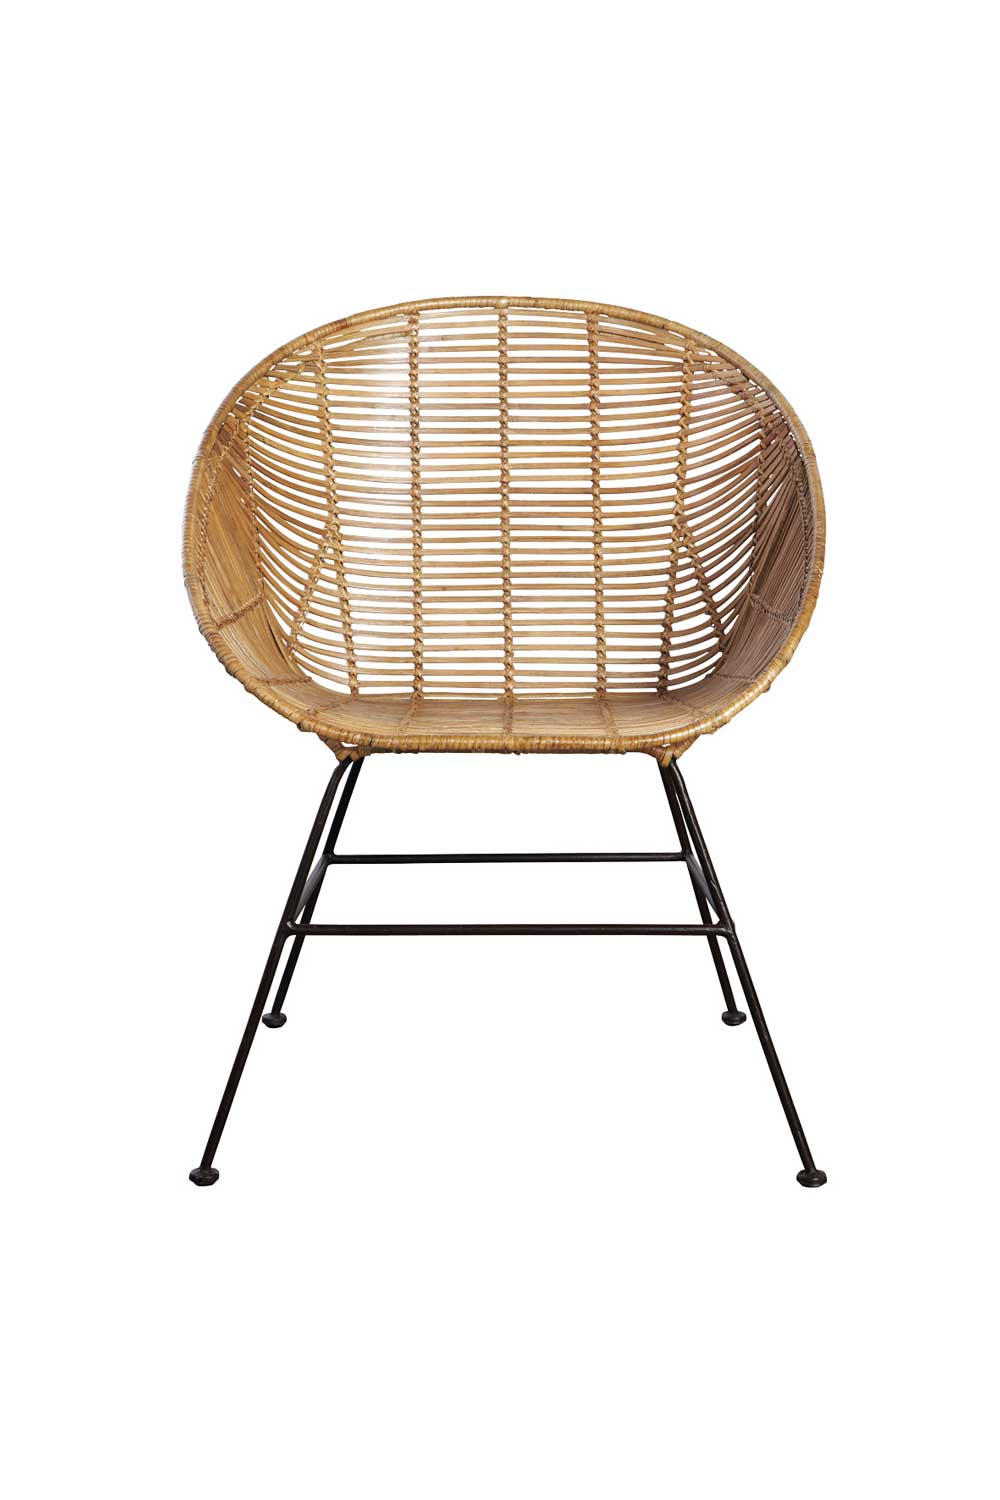 Image of   HOUSE DOCTOR Retro loungestol - naturfarvet rattan